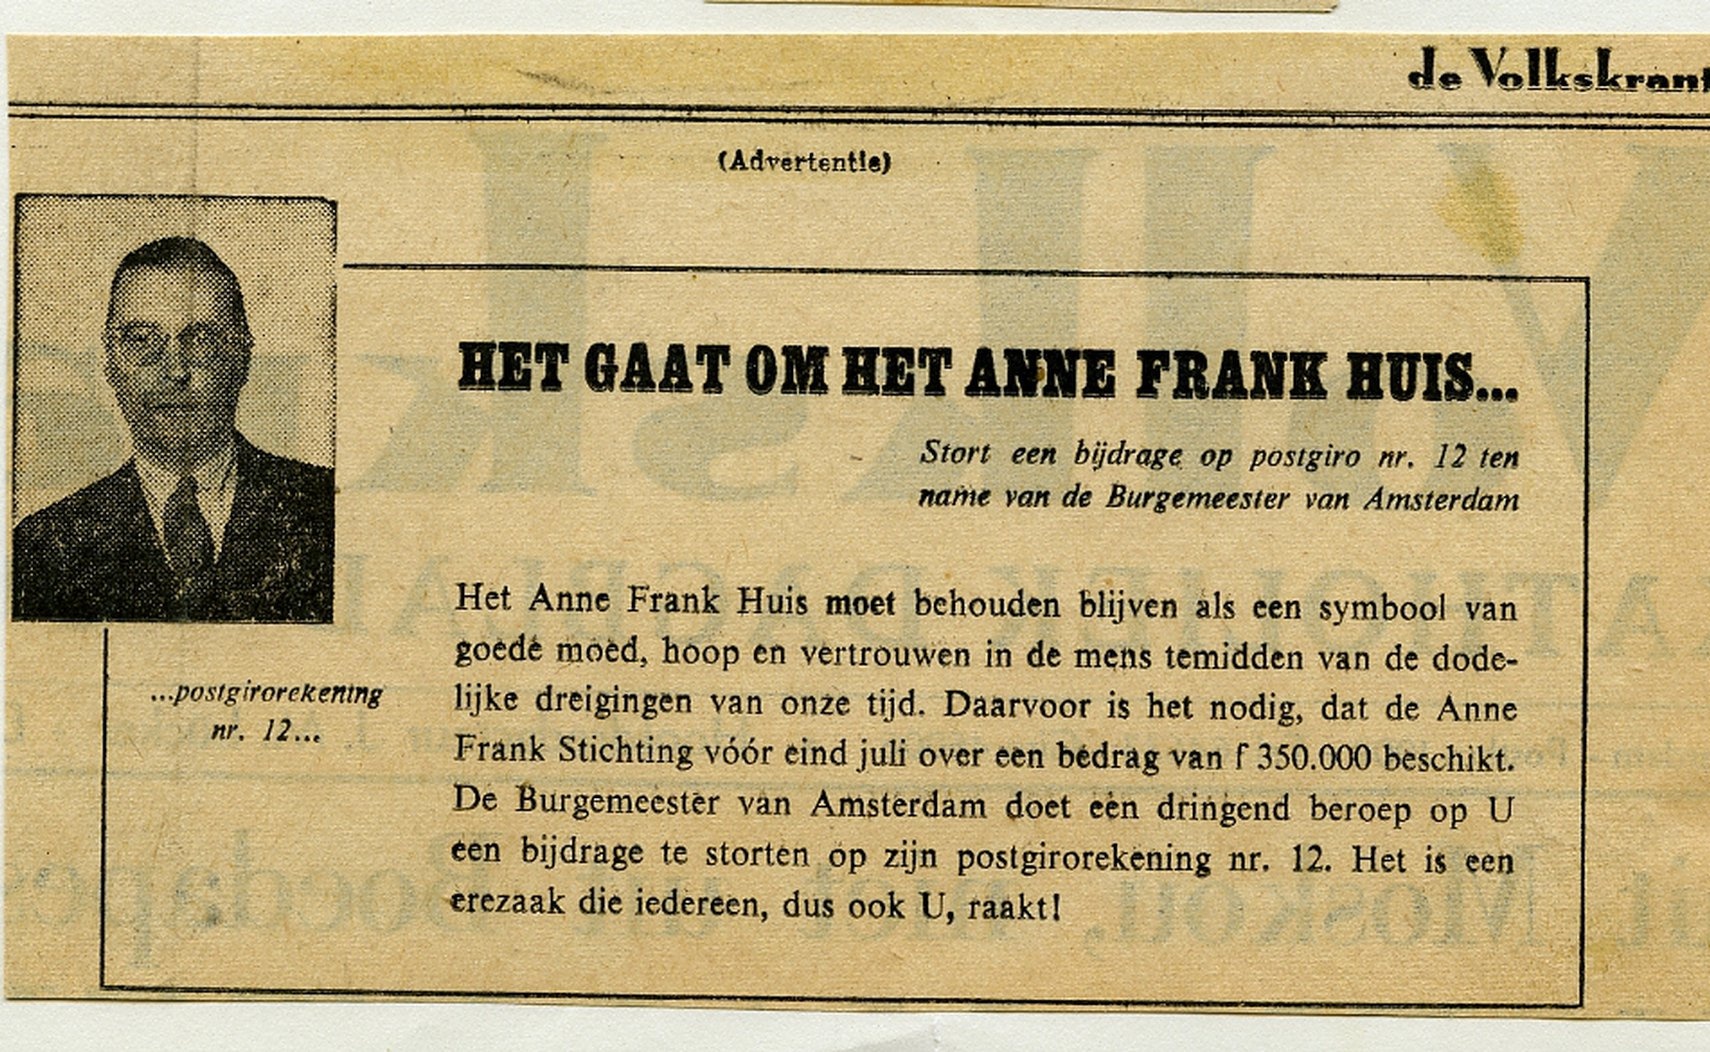 The appeal from Mayor Van Hall to donate money for the preservation of the Anne Frank Stichting